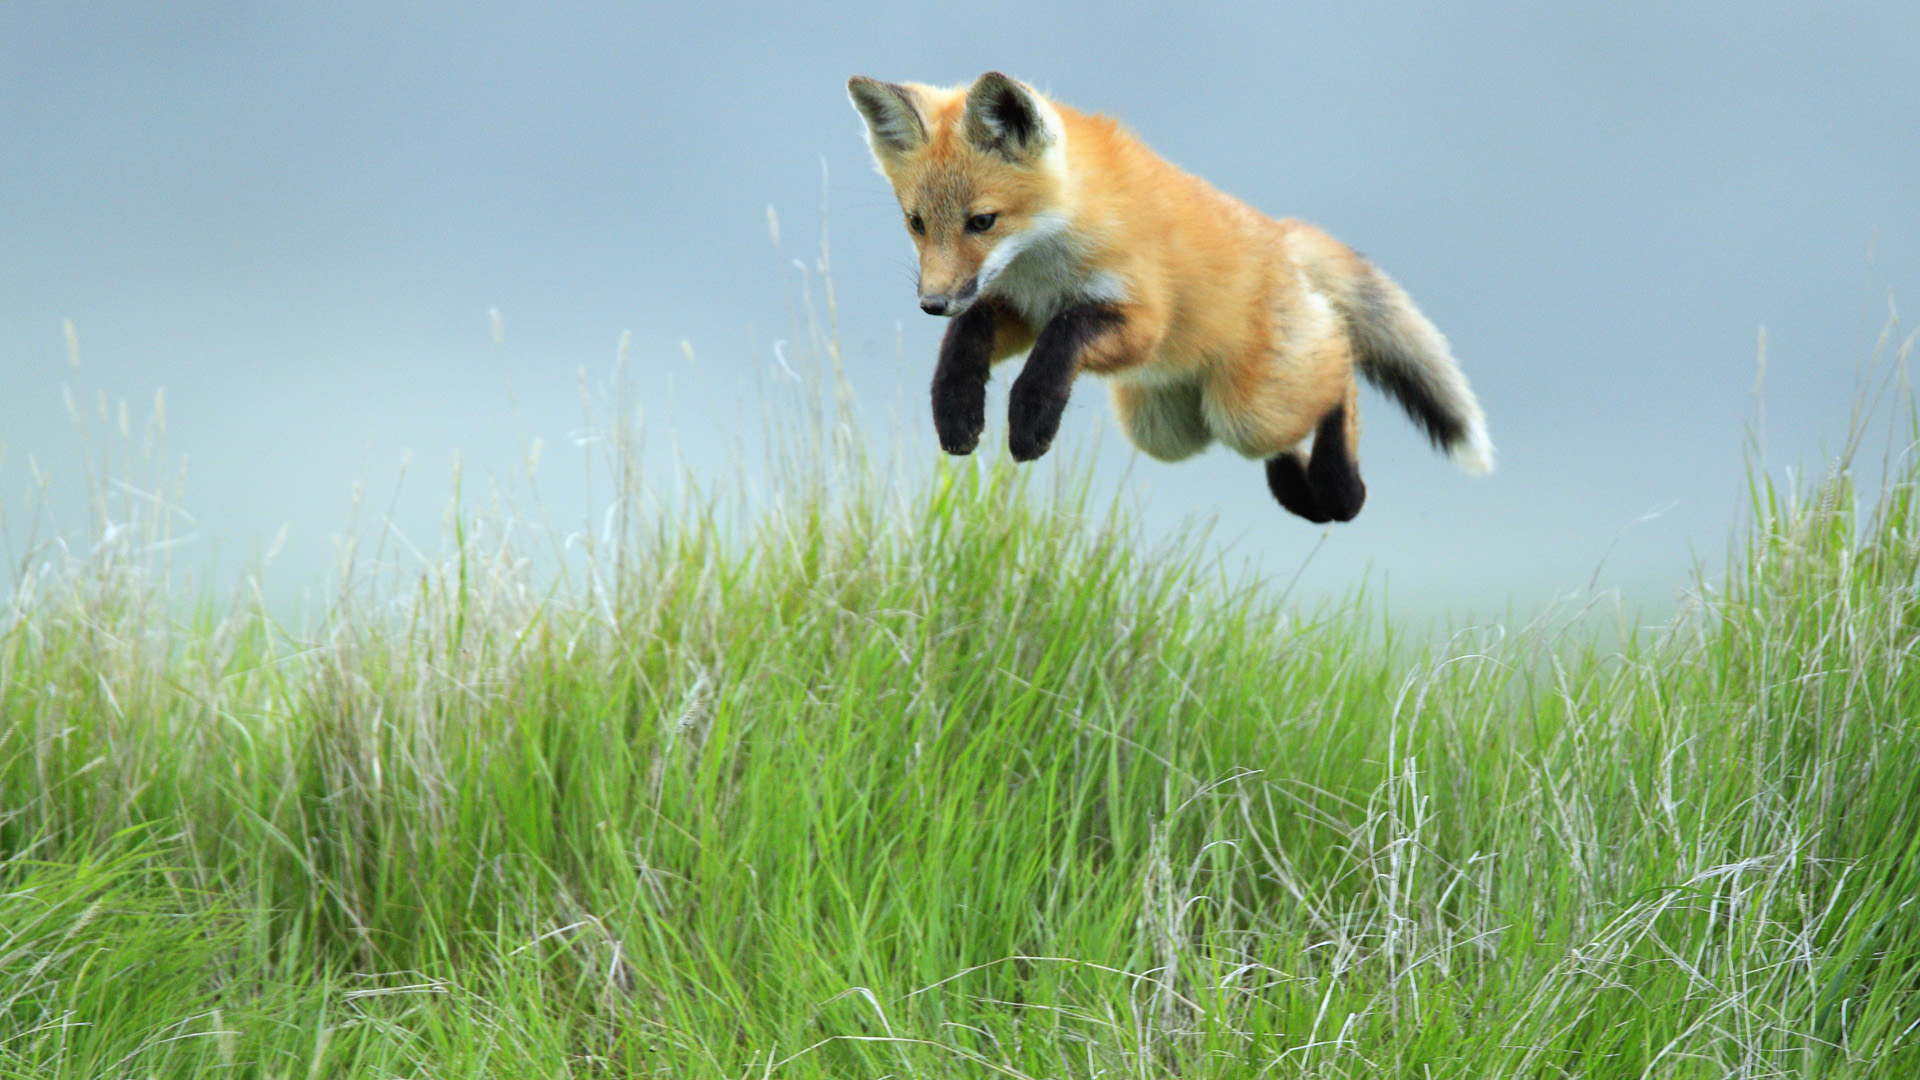 Foxes Leaping Red Fox Pup, Saskatchewan Animals Wallpapers and photos